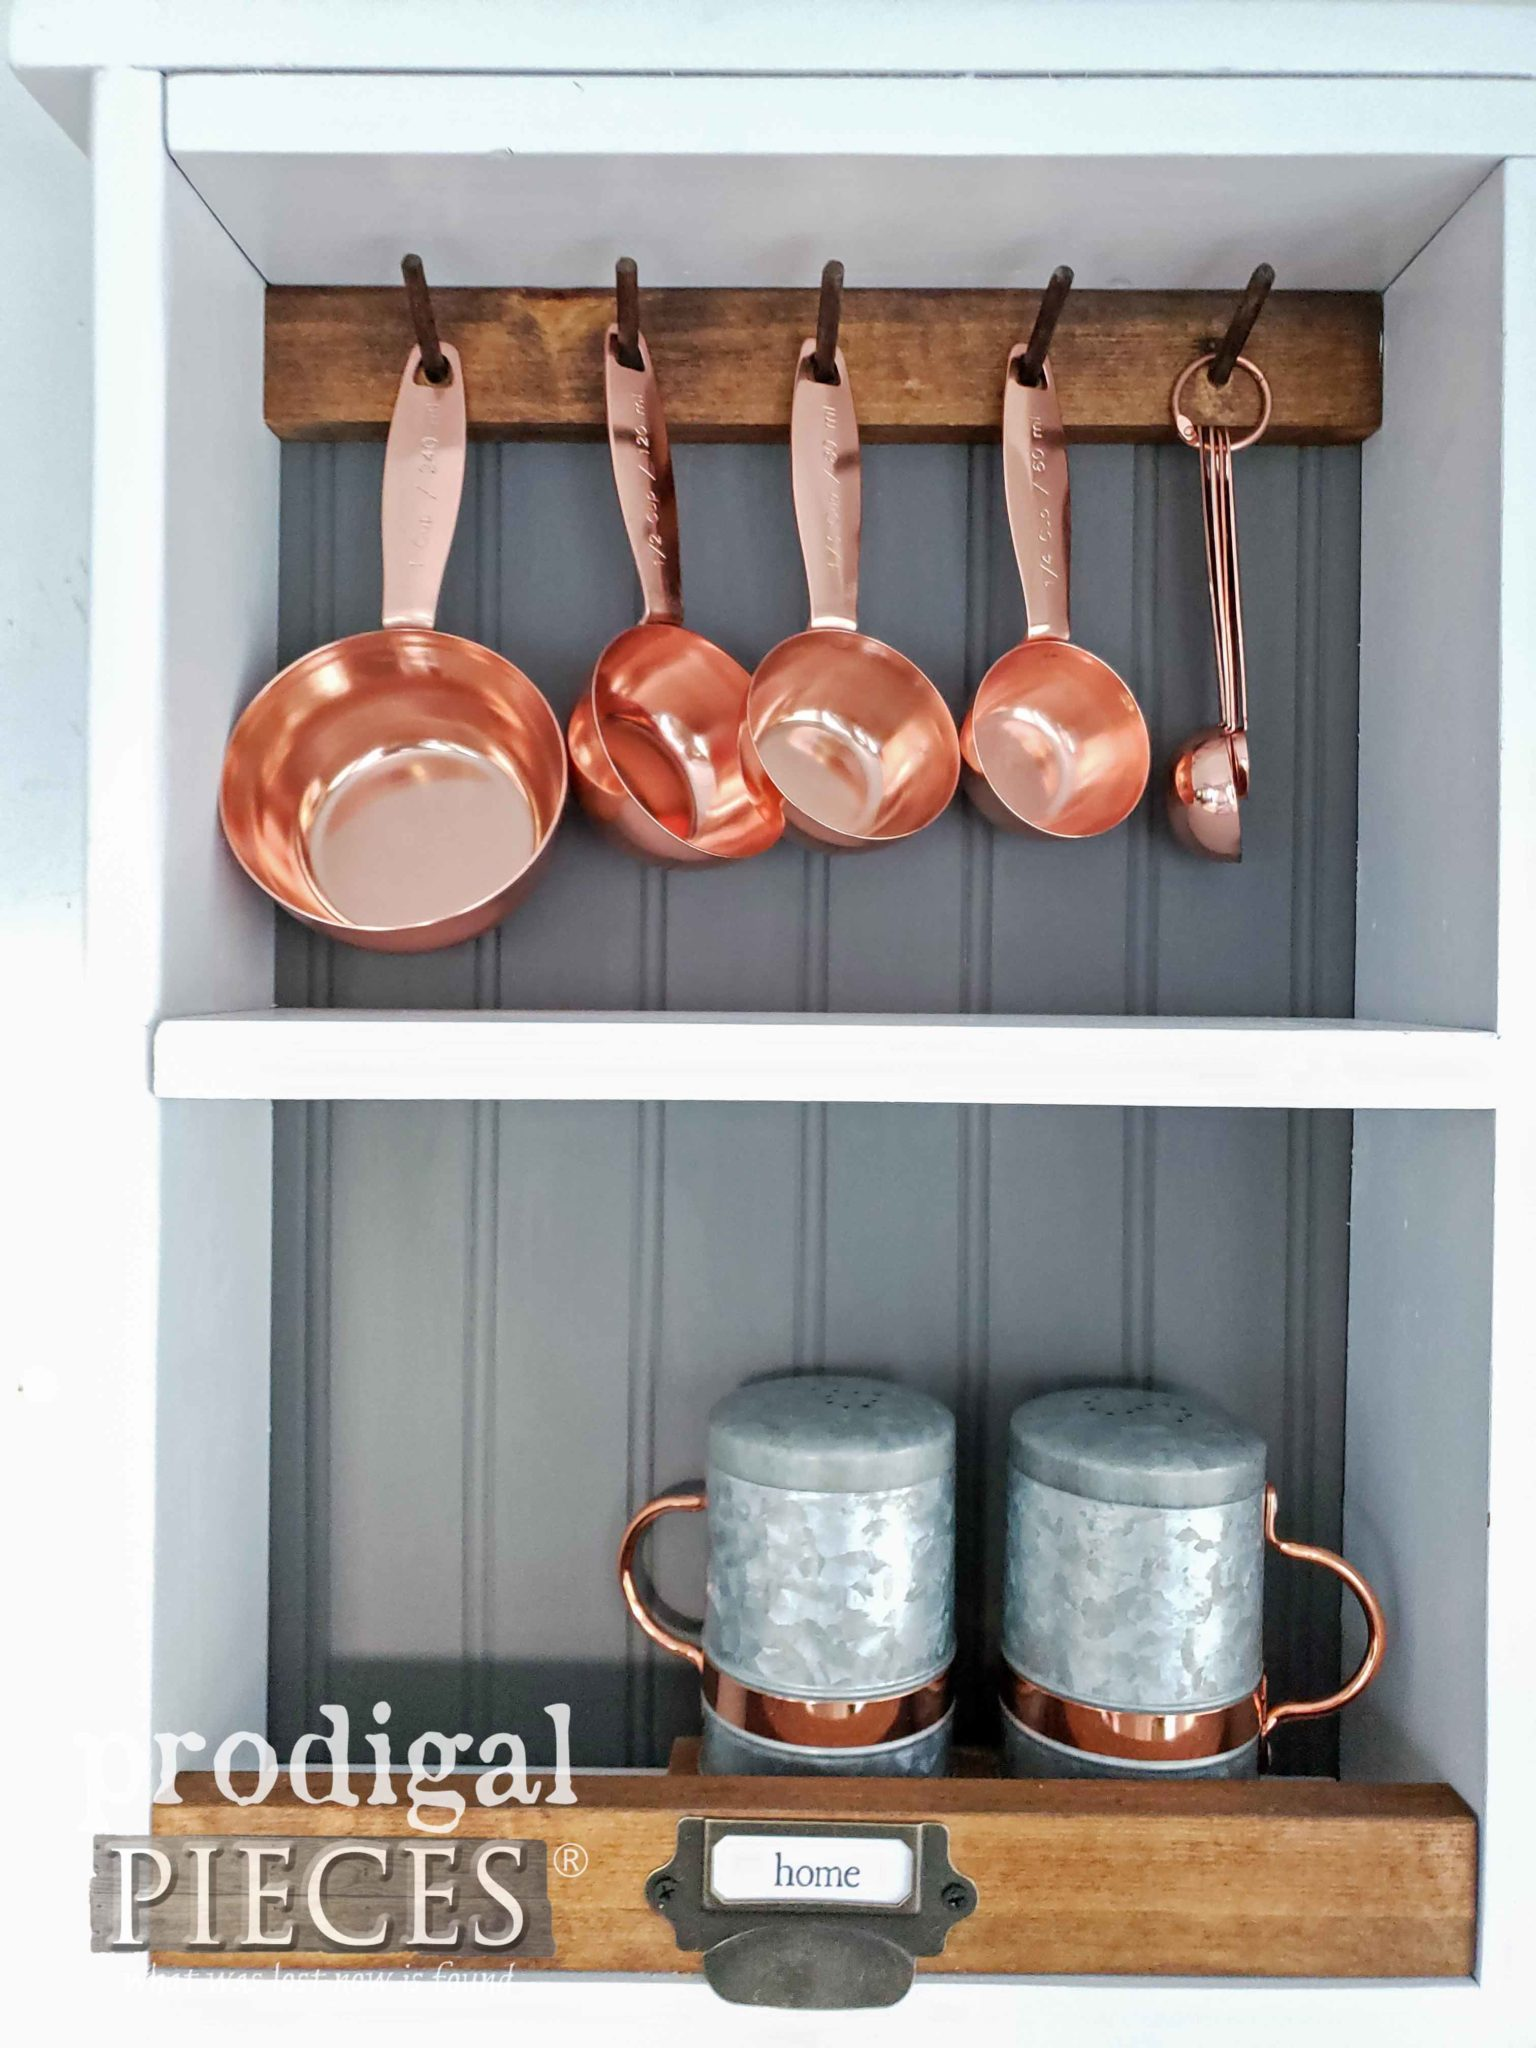 Copper Kitchen Bakeware Displayed in Farmhouse Storage Cubby by Prodigal Pieces | prodigalpieces.com